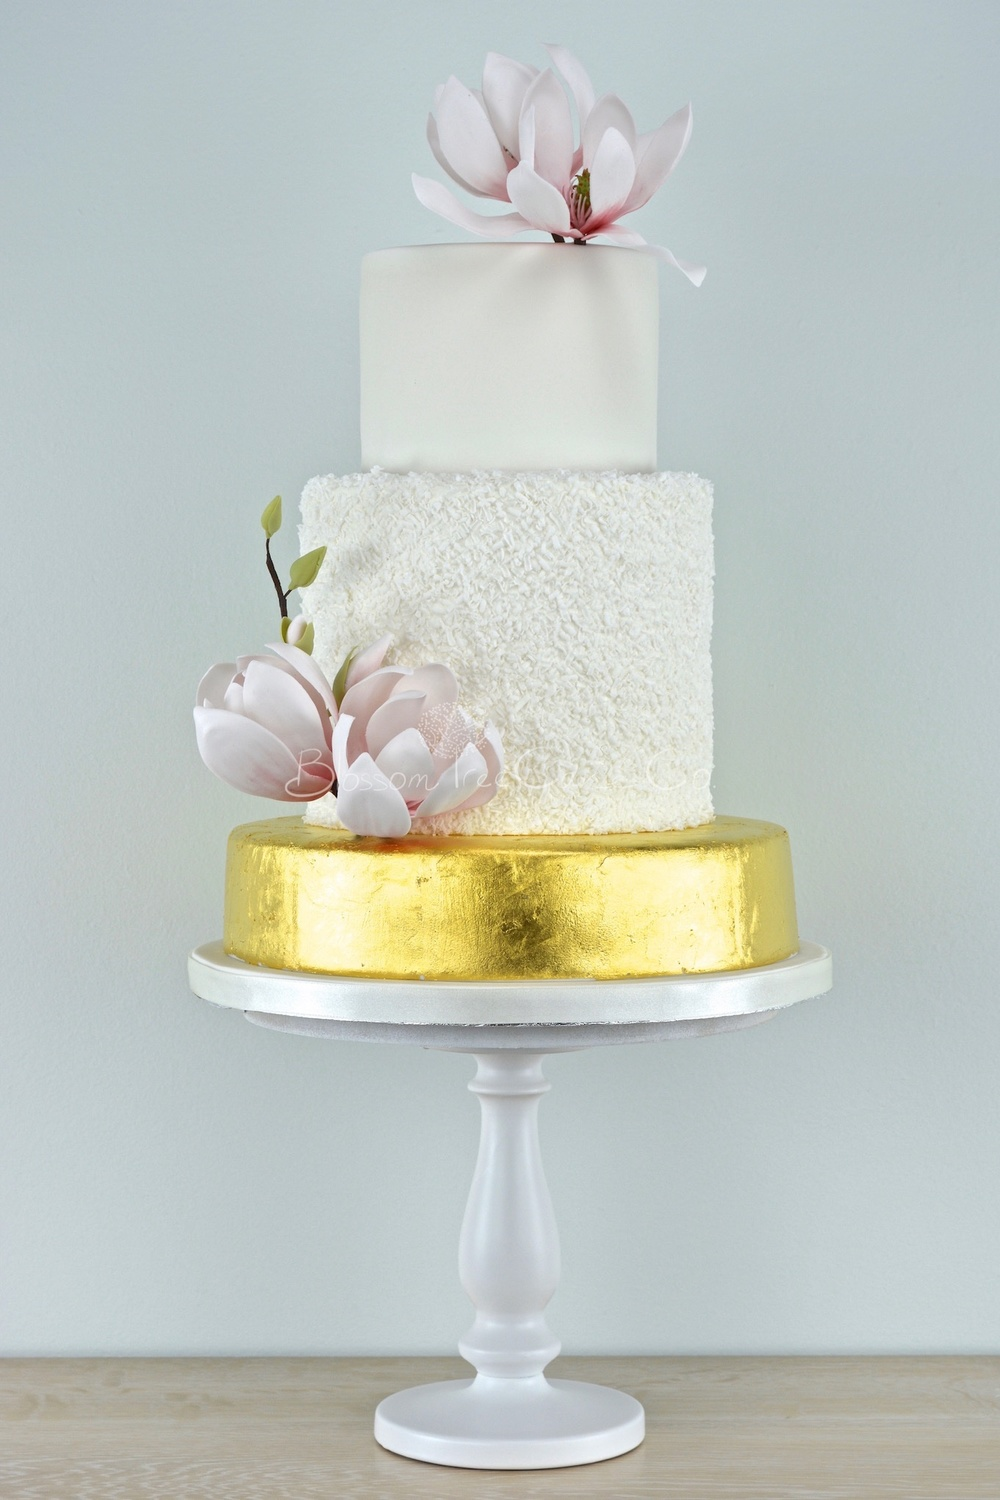 White and Gold Leaf with Magnolias wedding cake by Blossom Tree Cake Co Harrogate North Yorkshire_portrait.jpg